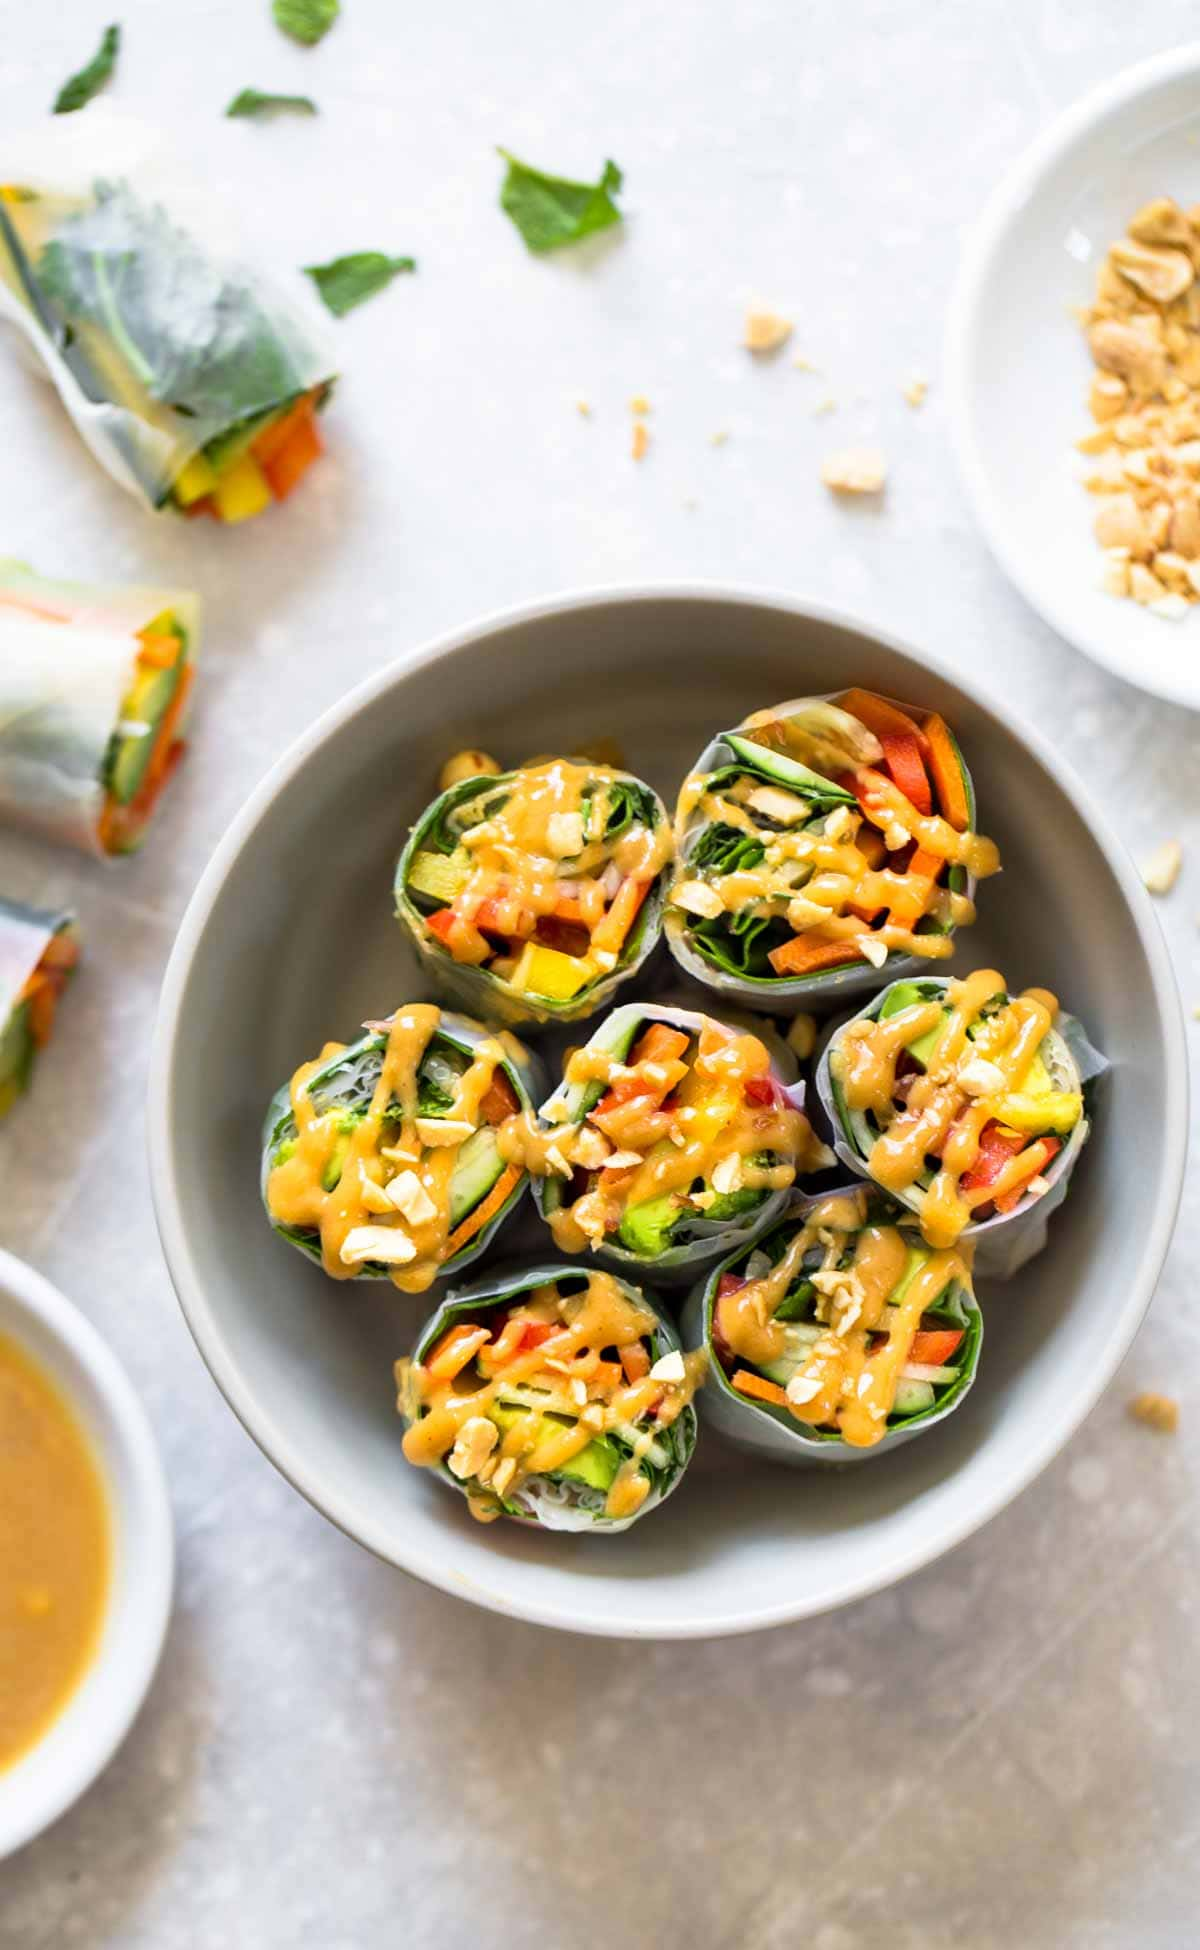 Thai Summer Rolls with Peanut Sauce in a bowl.